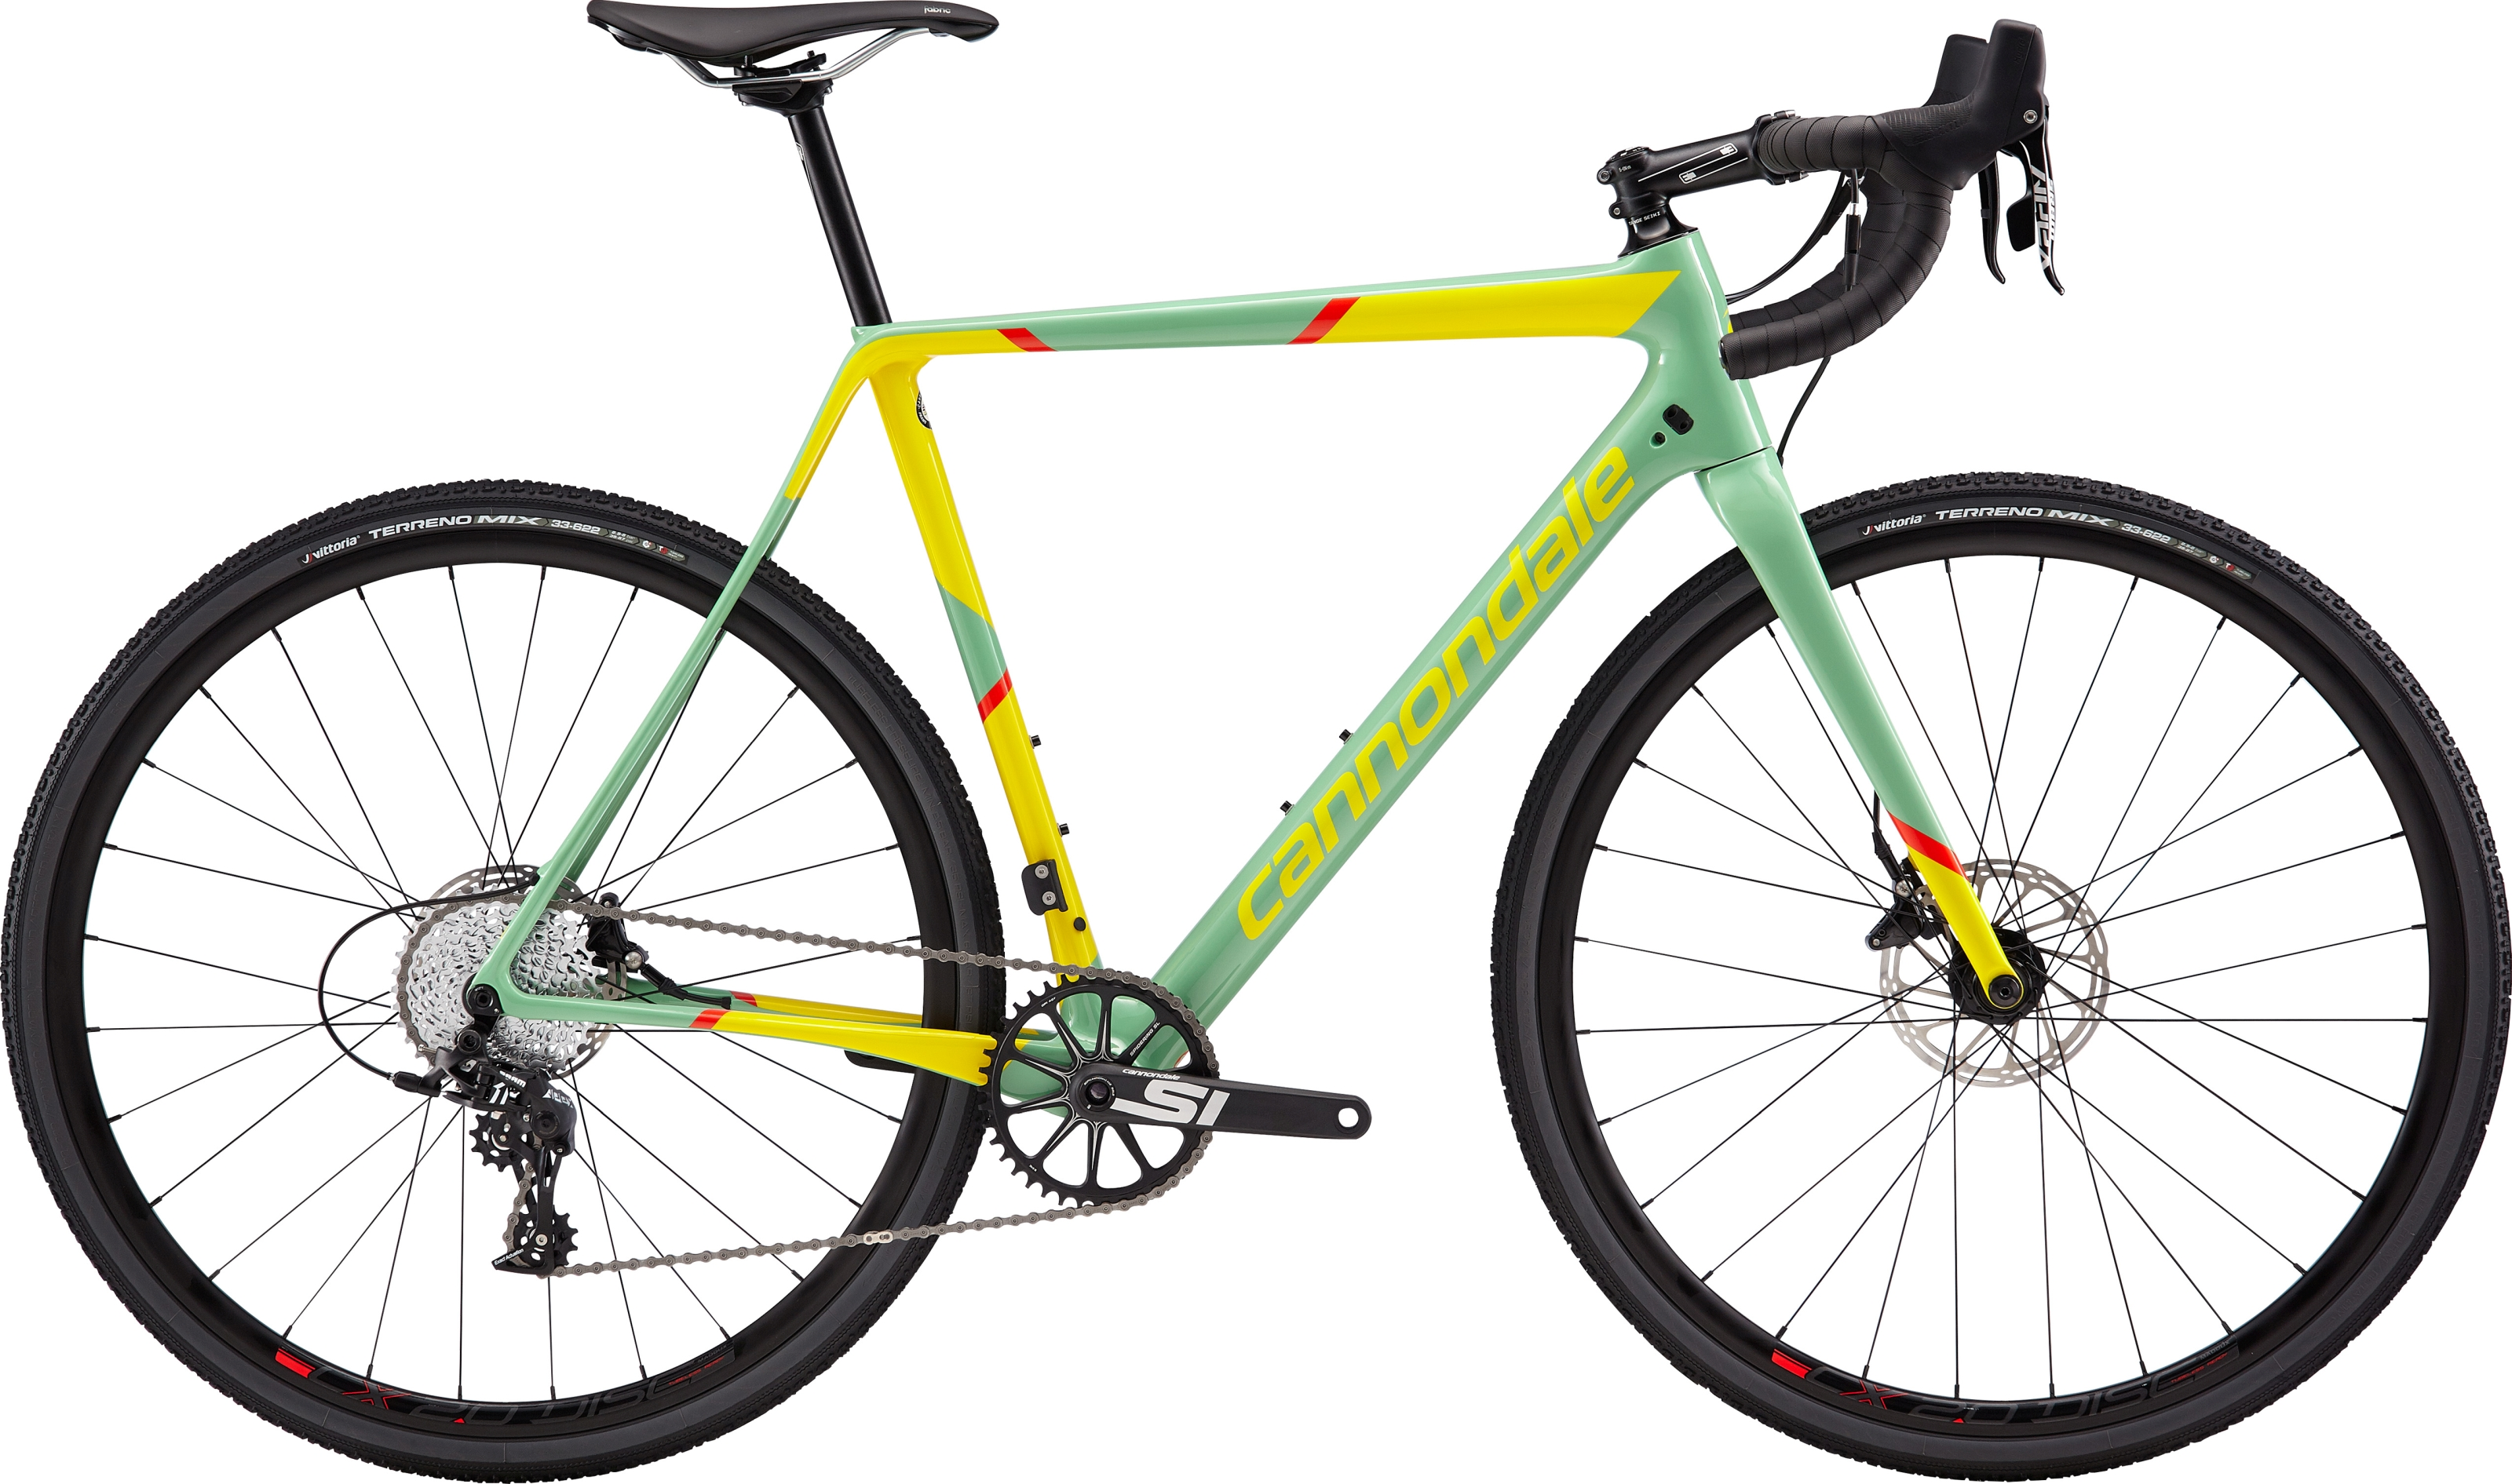 2019 Cannondale SuperX Apex 1 Carbon Mens Cyclocross bike in Green | Cross-cykler